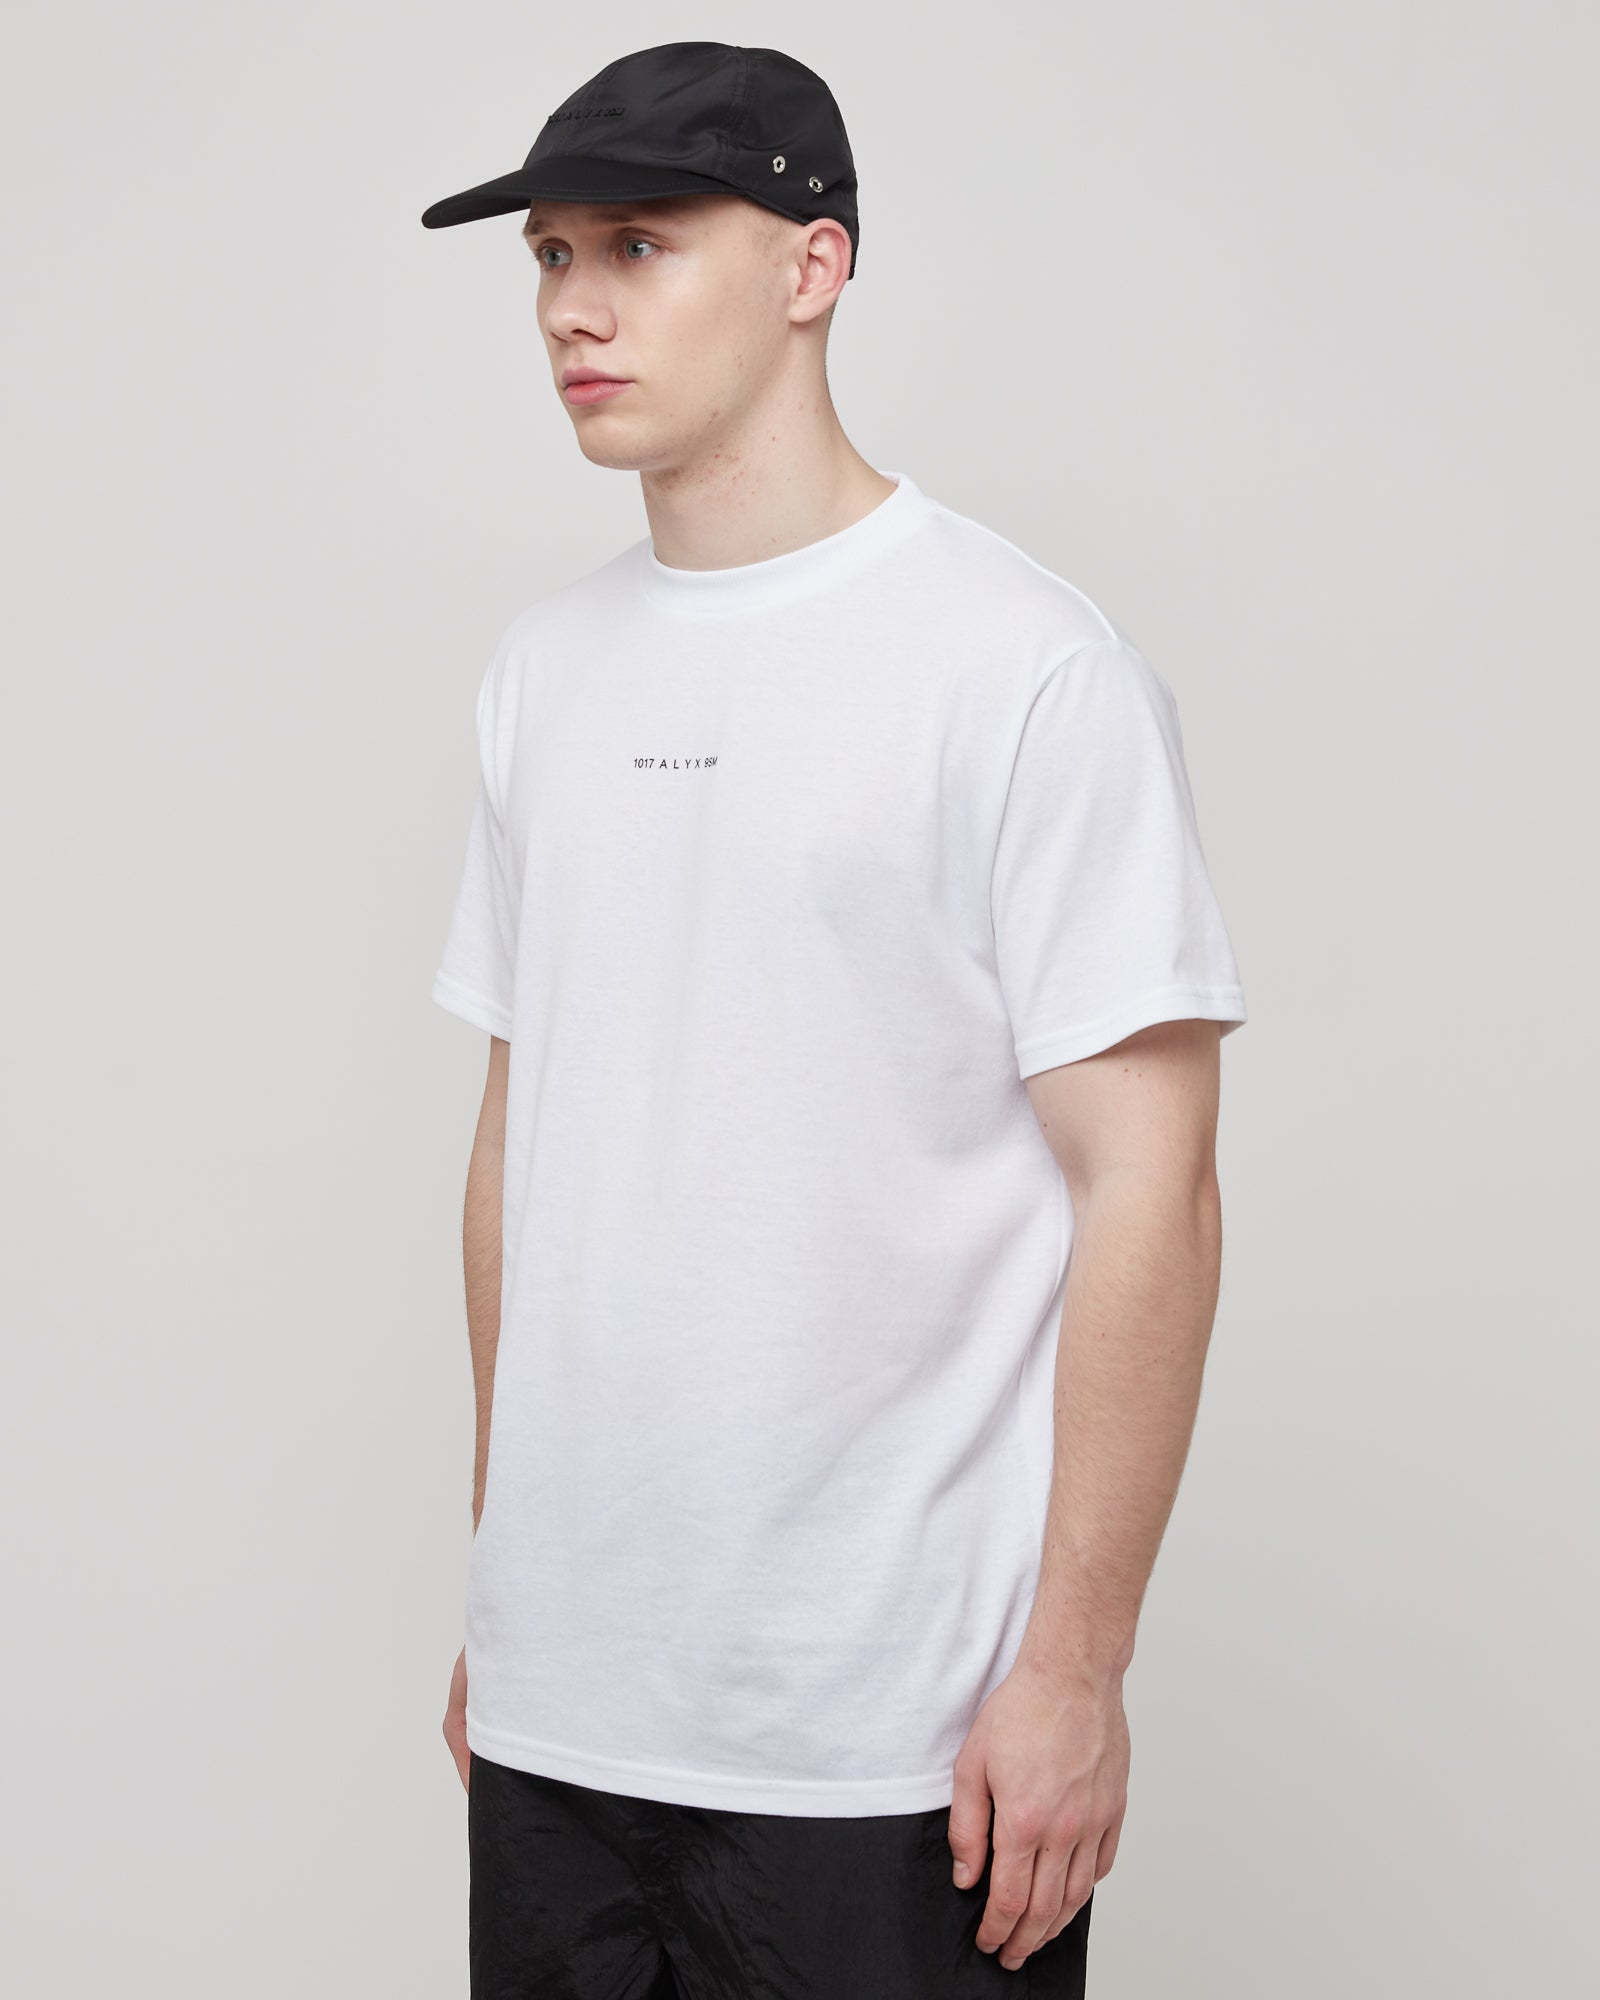 S/S  Logo T-Shirt in White